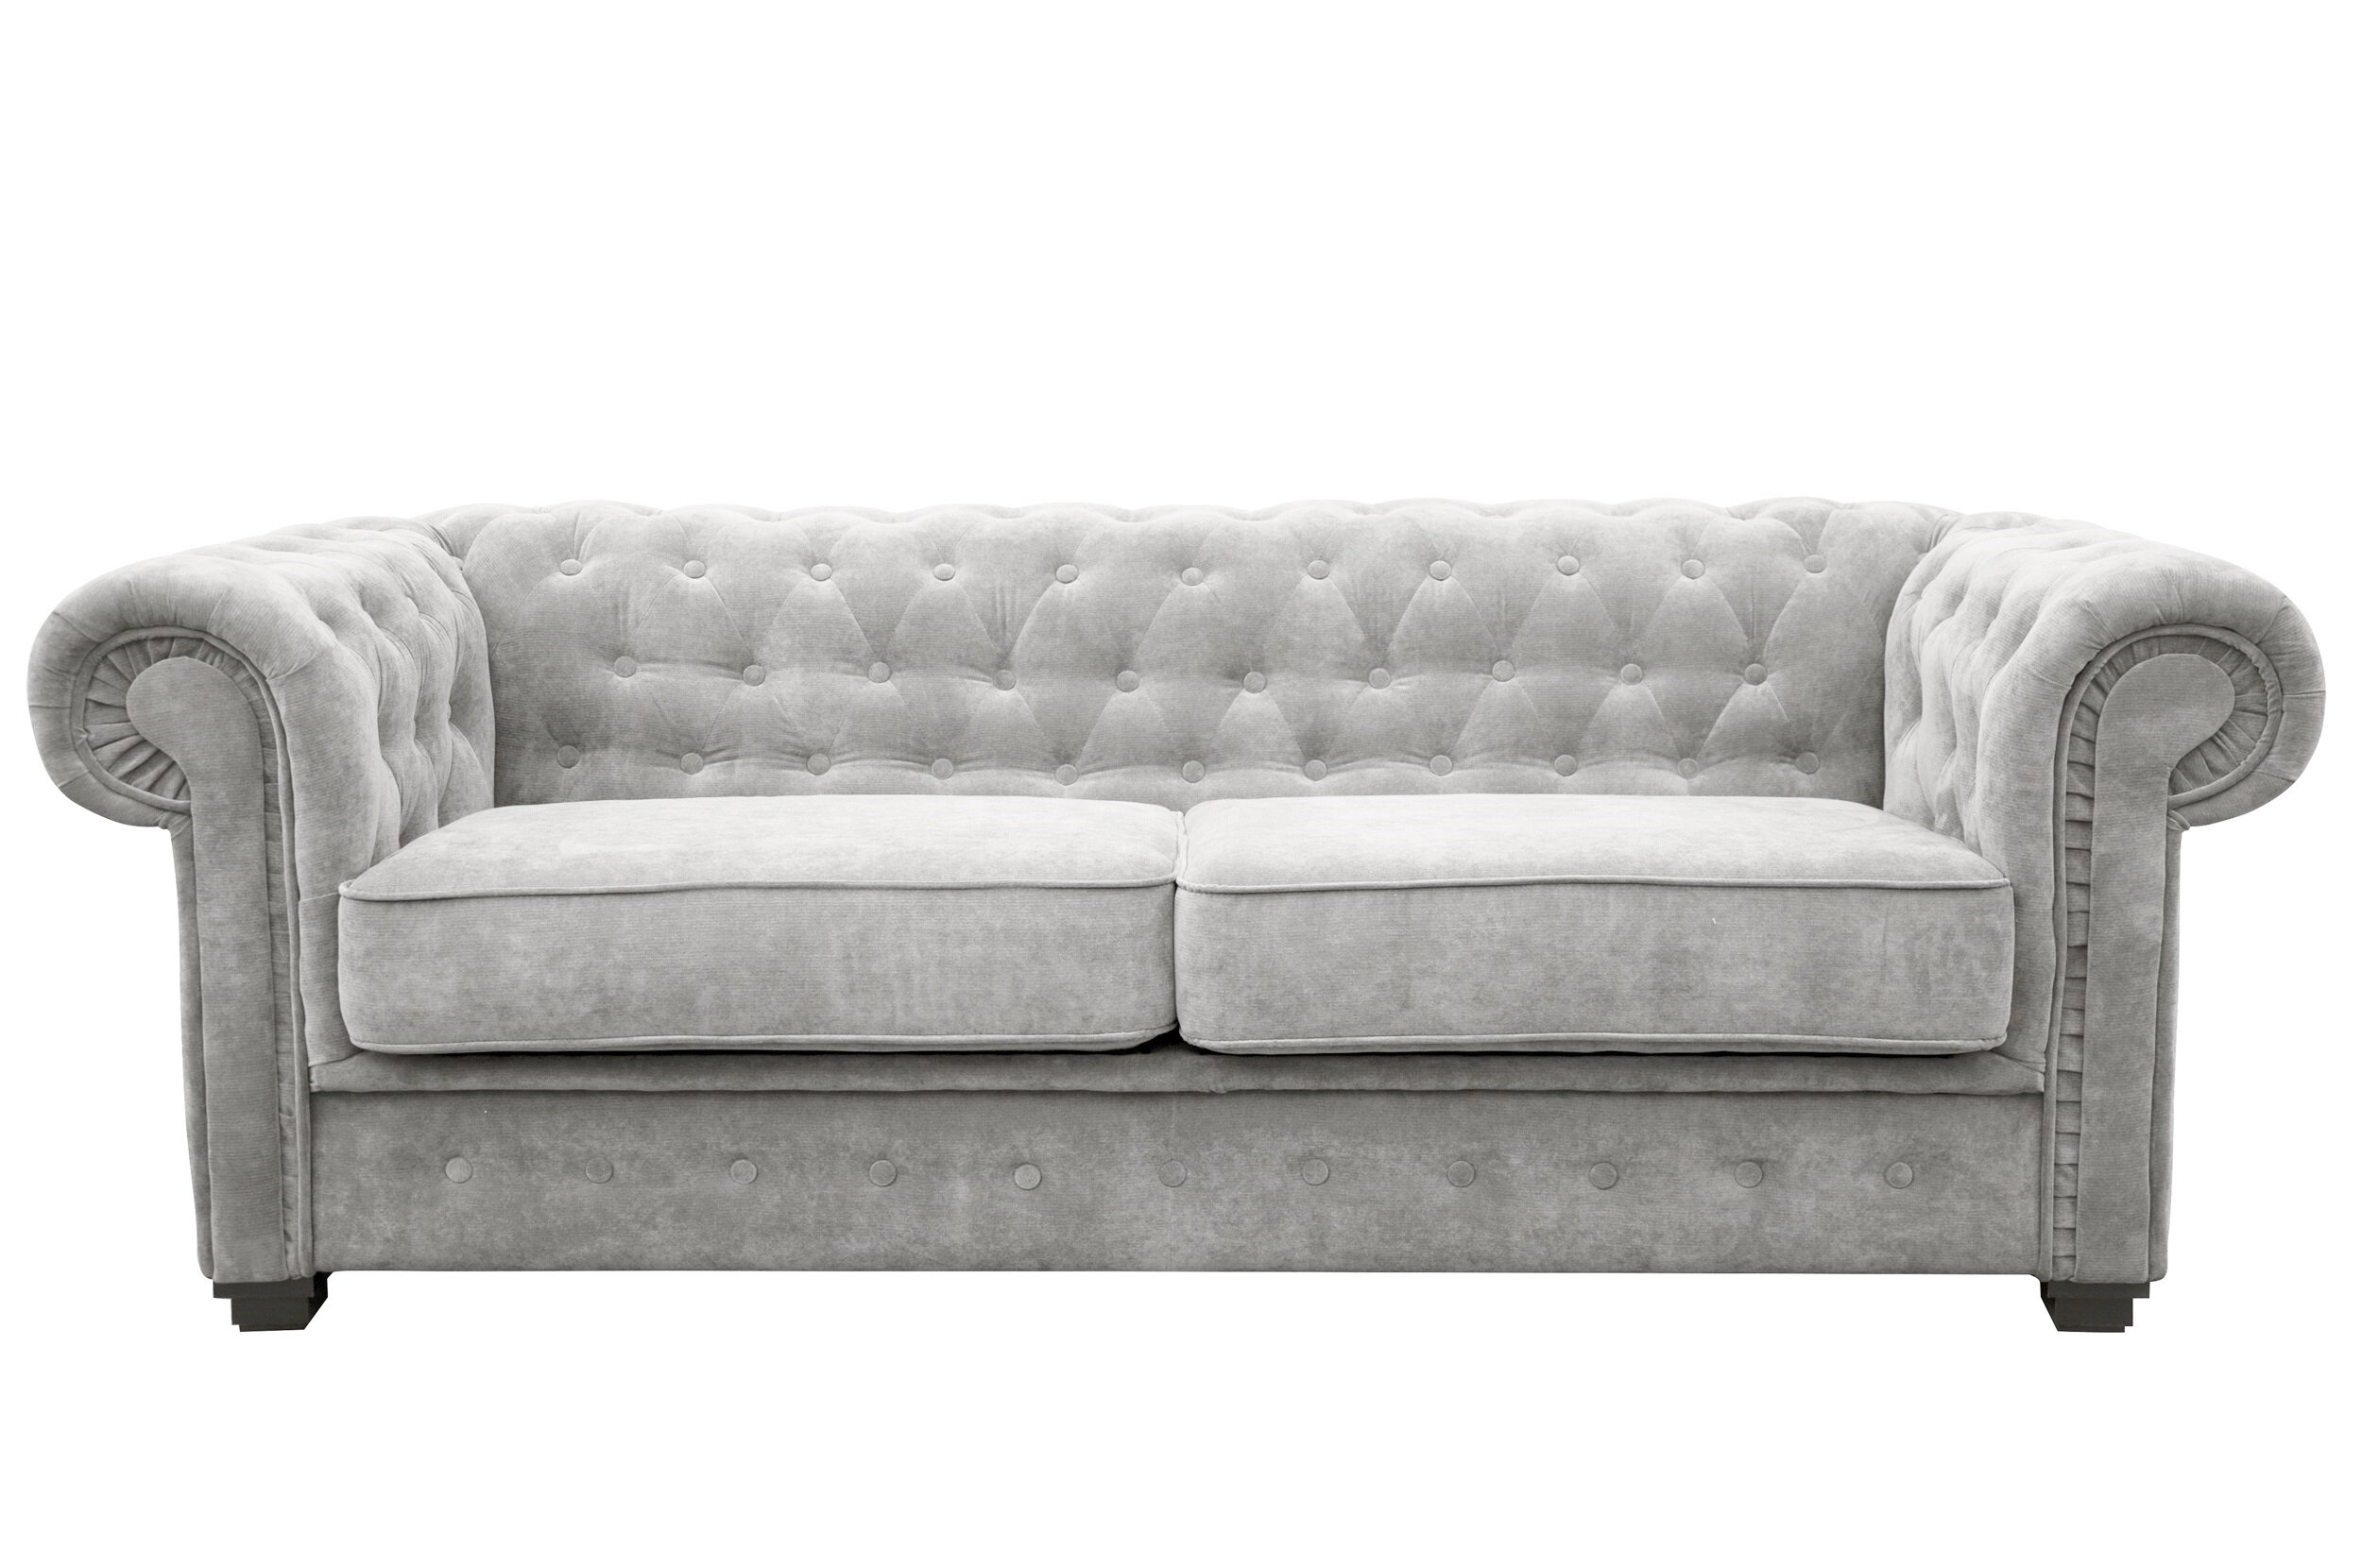 3 Seater Chesterfield Sofa Bed